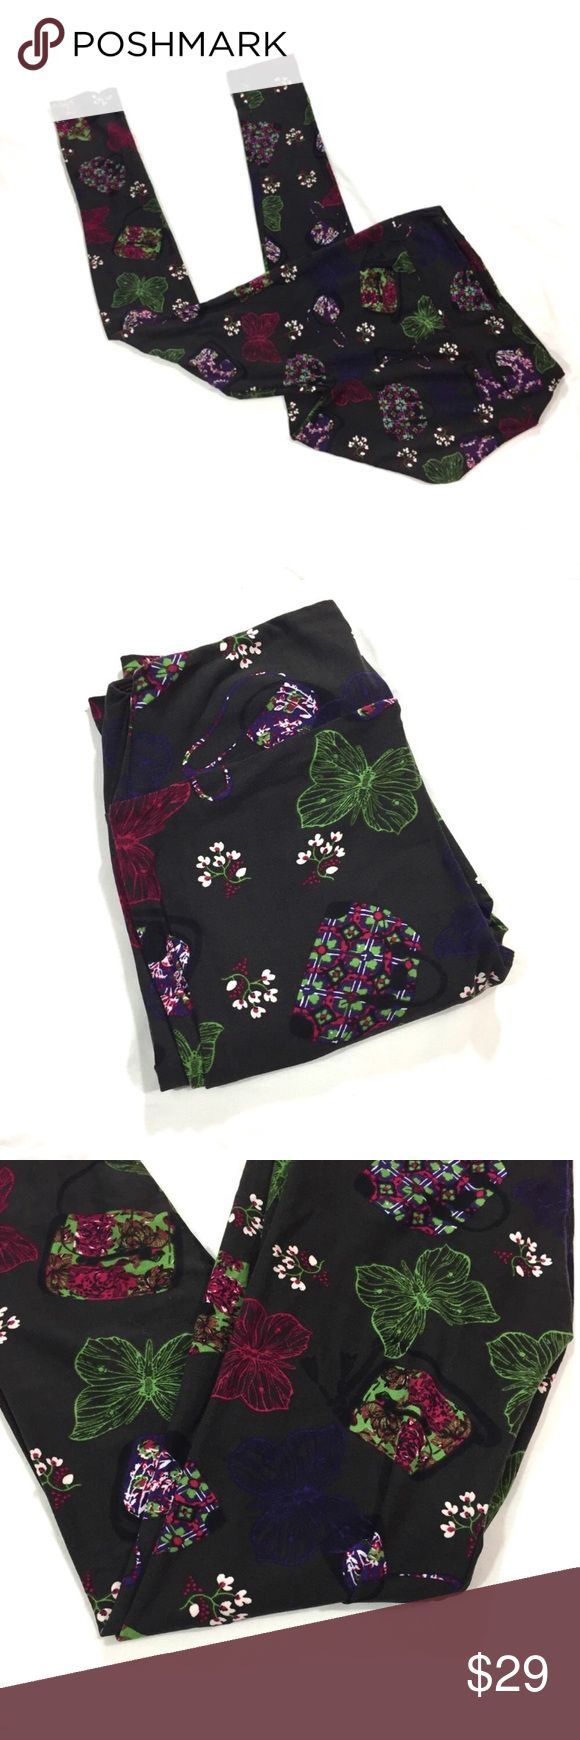 LuLaRoe OS LEGGINGS FLORAL PURSES BUTTERFLIES 🦋 Very pretty LuLaRoe one size leggings NWOT.  These have a butterfly and floral purses print on a brown background.  The brown is VERY dark- I originally thought it was black.  I haven't seen any other leggings with this print on the brown background. LuLaRoe Pants Leggings